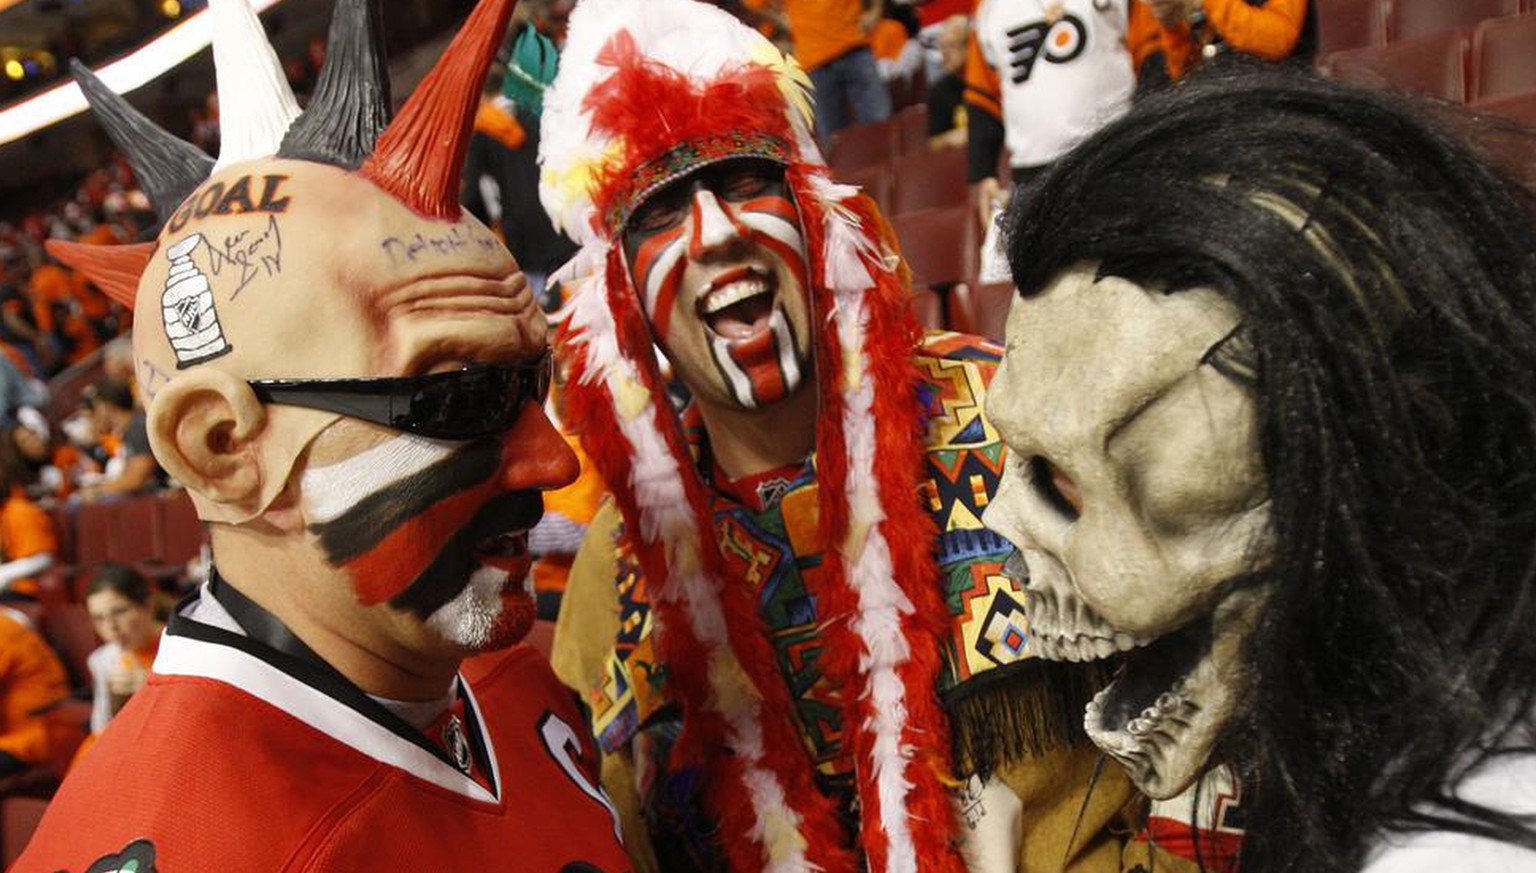 Philadelphia Flyers fan Chris Hamilton, right, talks with Chicago Blackhawks fans Jack Basich, left, of Portage, Ind., and Steve Desancic, center, of Munster, Ind., before Game 6 of the NHL Stanley Cup hockey finals Wednesday, June 9, 2010, in Philadelphia. (AP Photo/Kathy Willens)